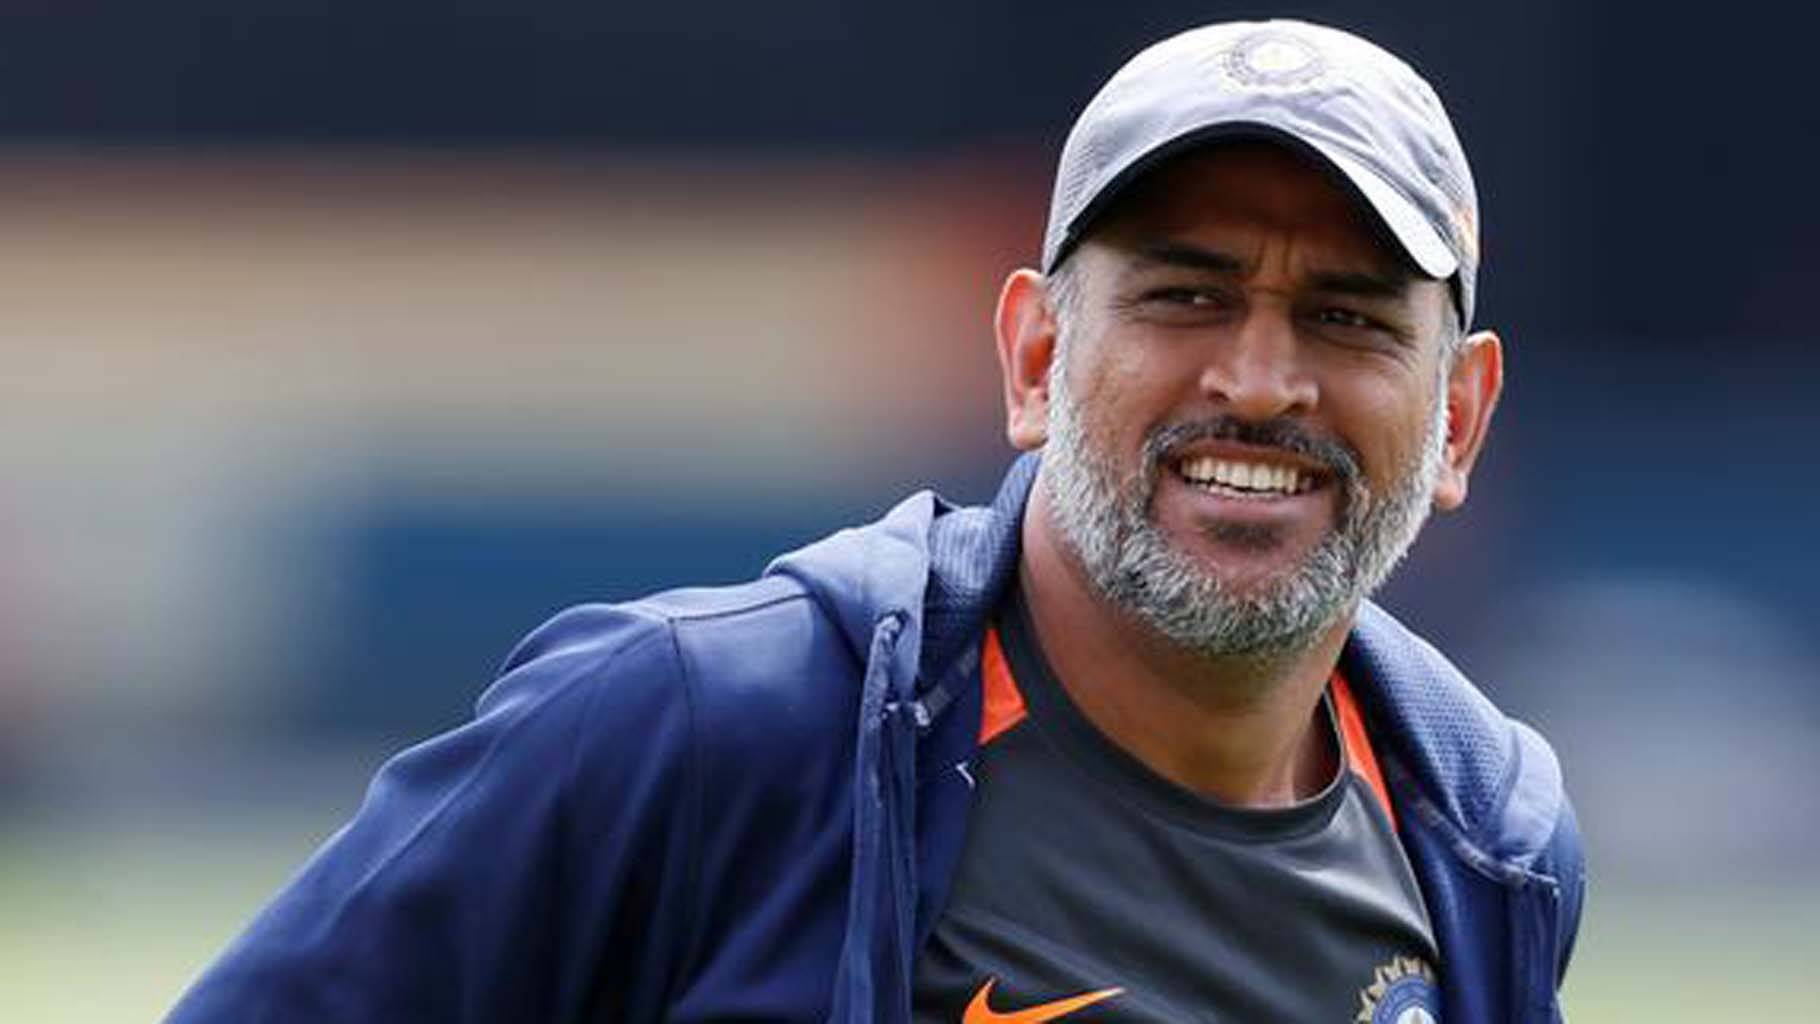 Dhoni is not just a cricketer. He is a cricketing phenomenon